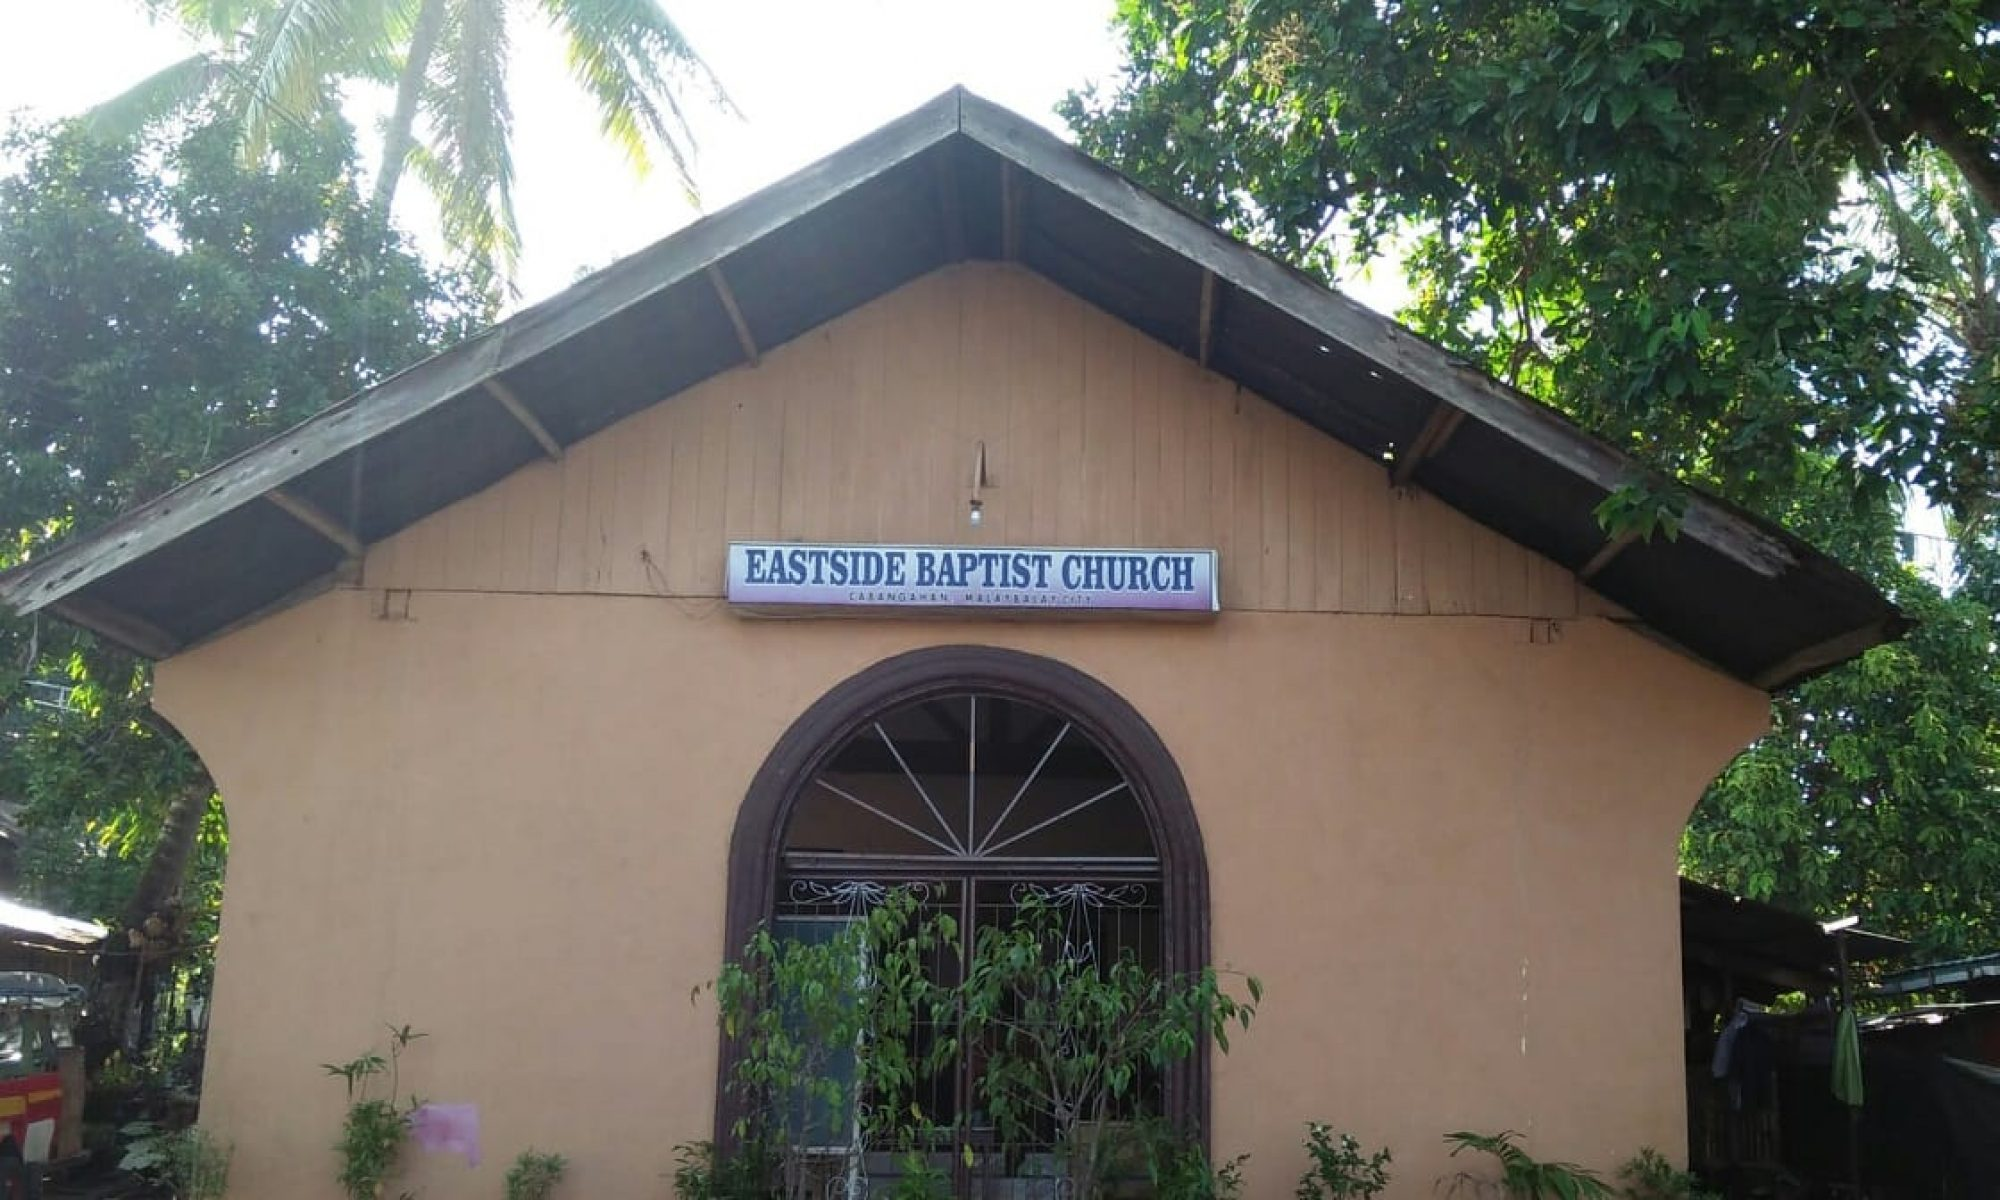 Eastside Baptist Church